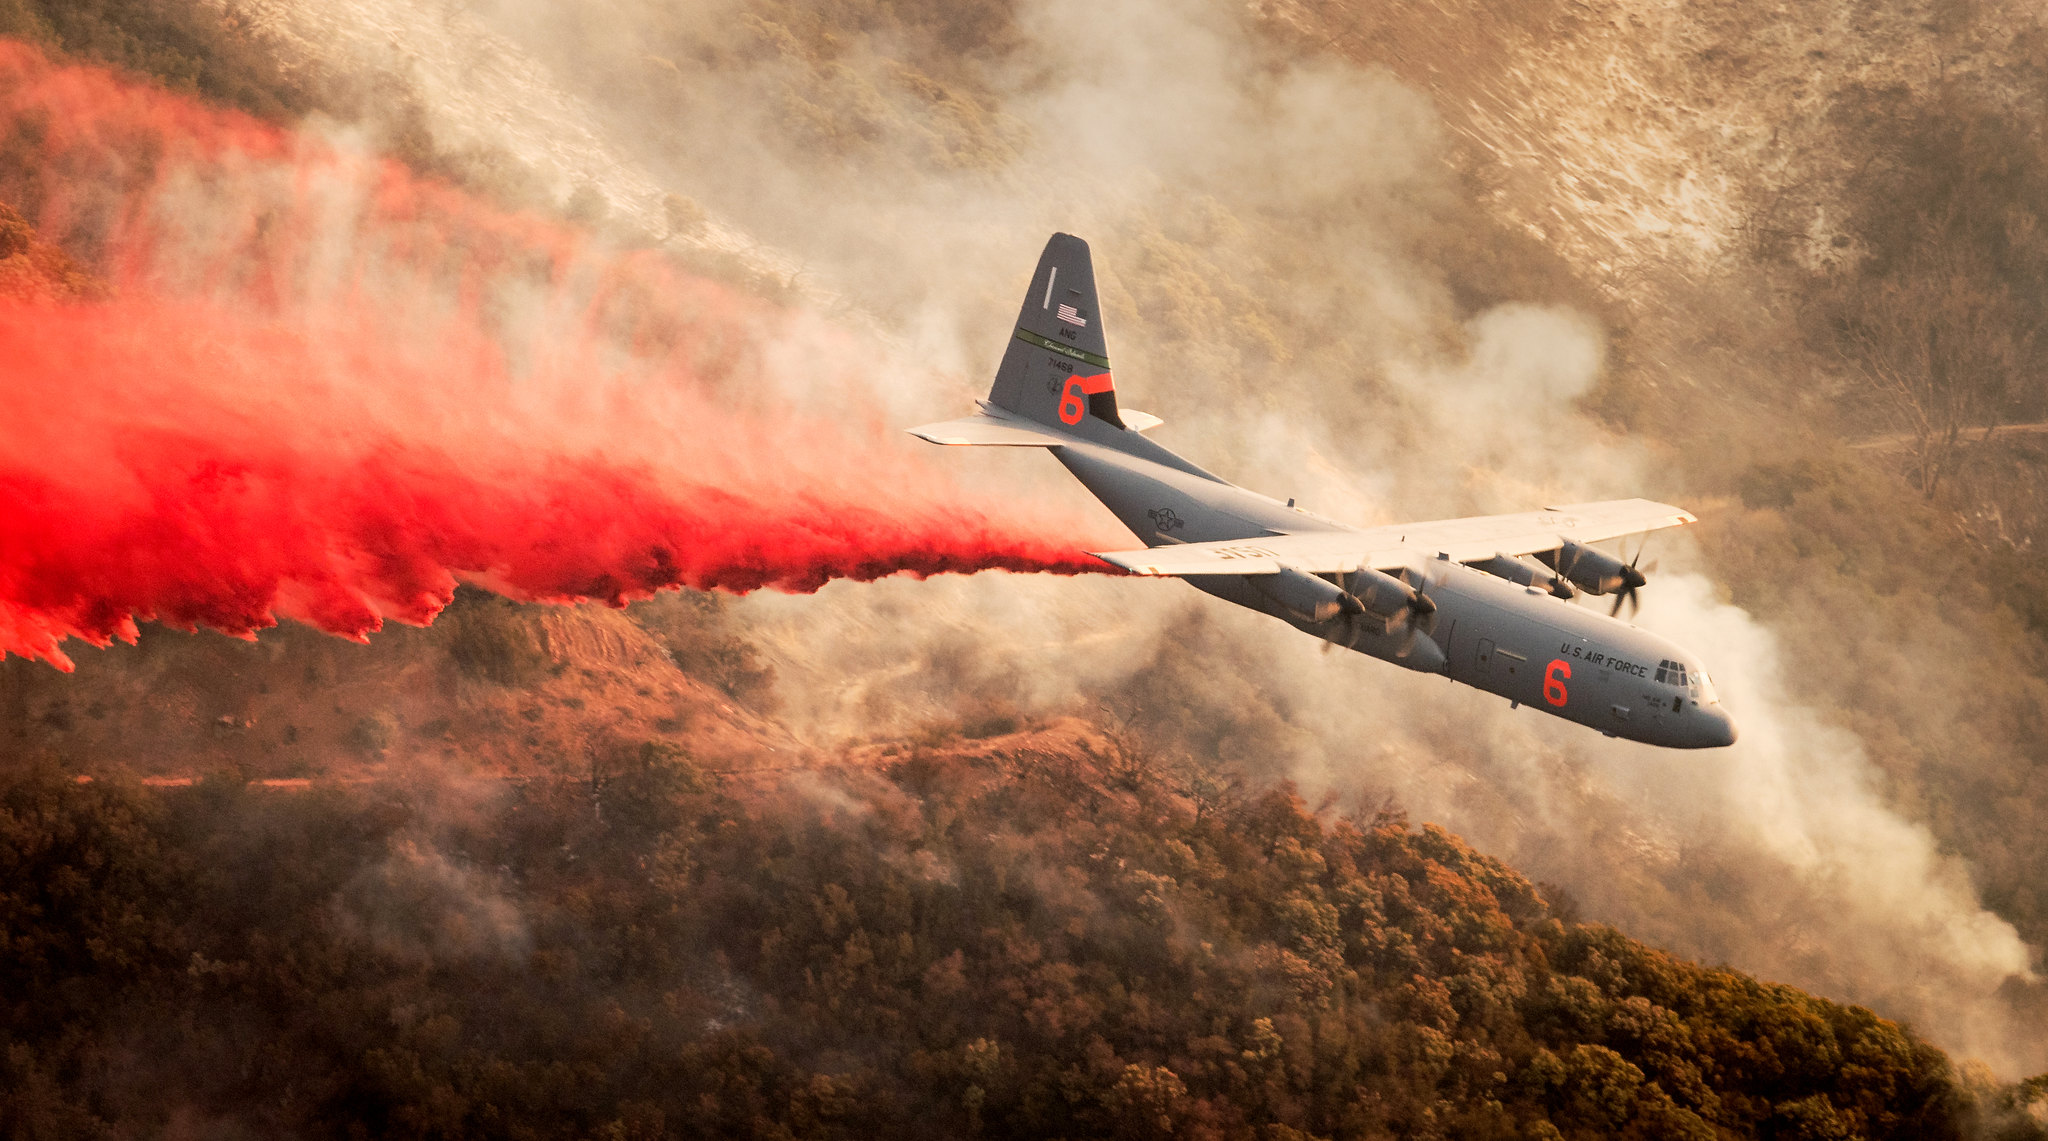 A C-130J Hercules assigned to the 146th Airlift Wing based at Channel Islands Air National Guard Base in Port Hueneme, California, drops fire retardant chemicals onto a ridge line above Santa Barbara, Dec. 13, 2017, as part of the effort to contain the Thomas Fire. (U.S. Air Force photo by J.M. Eddins Jr.)